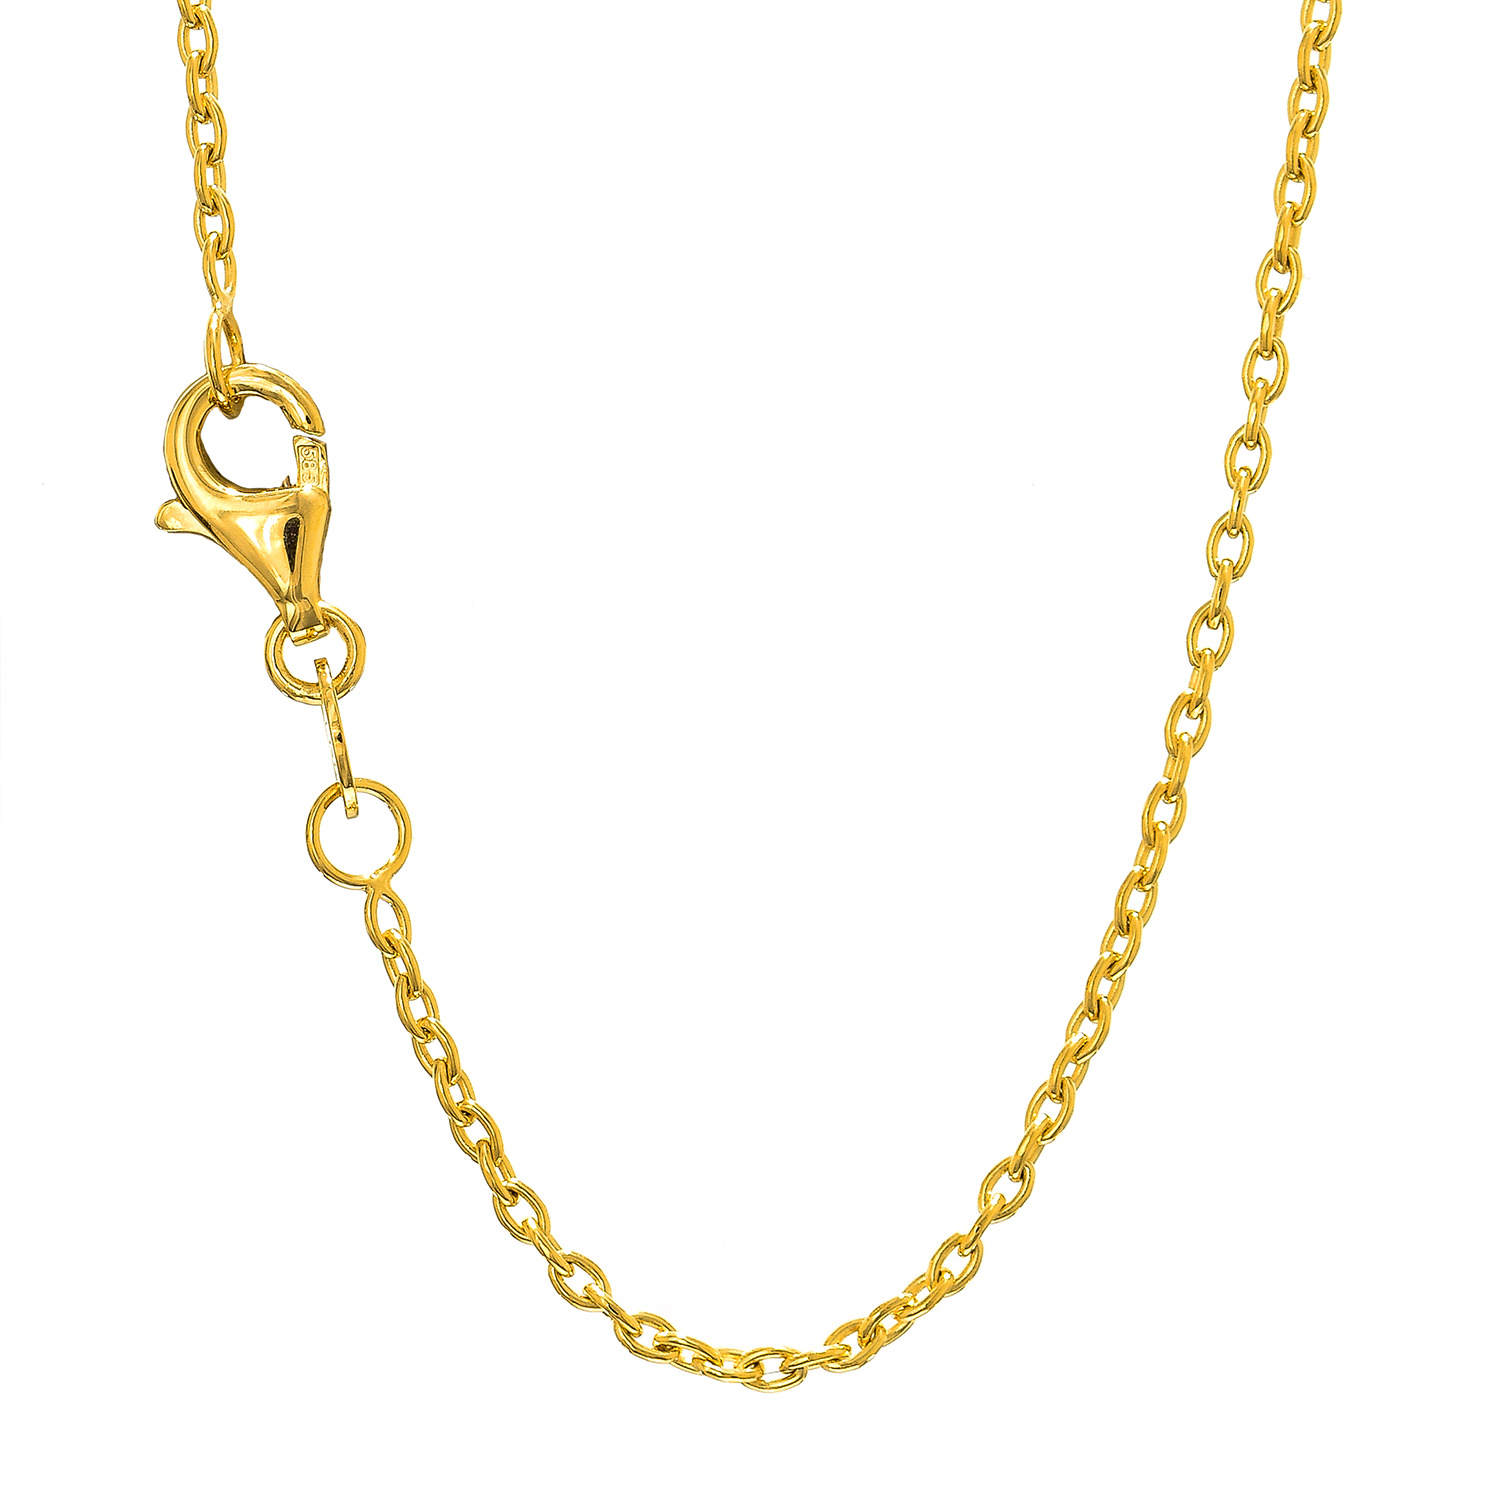 14k-Solid-Gold-1-5mm-Round-Cable-Chain-Necklace-16-034-18-034-20-034